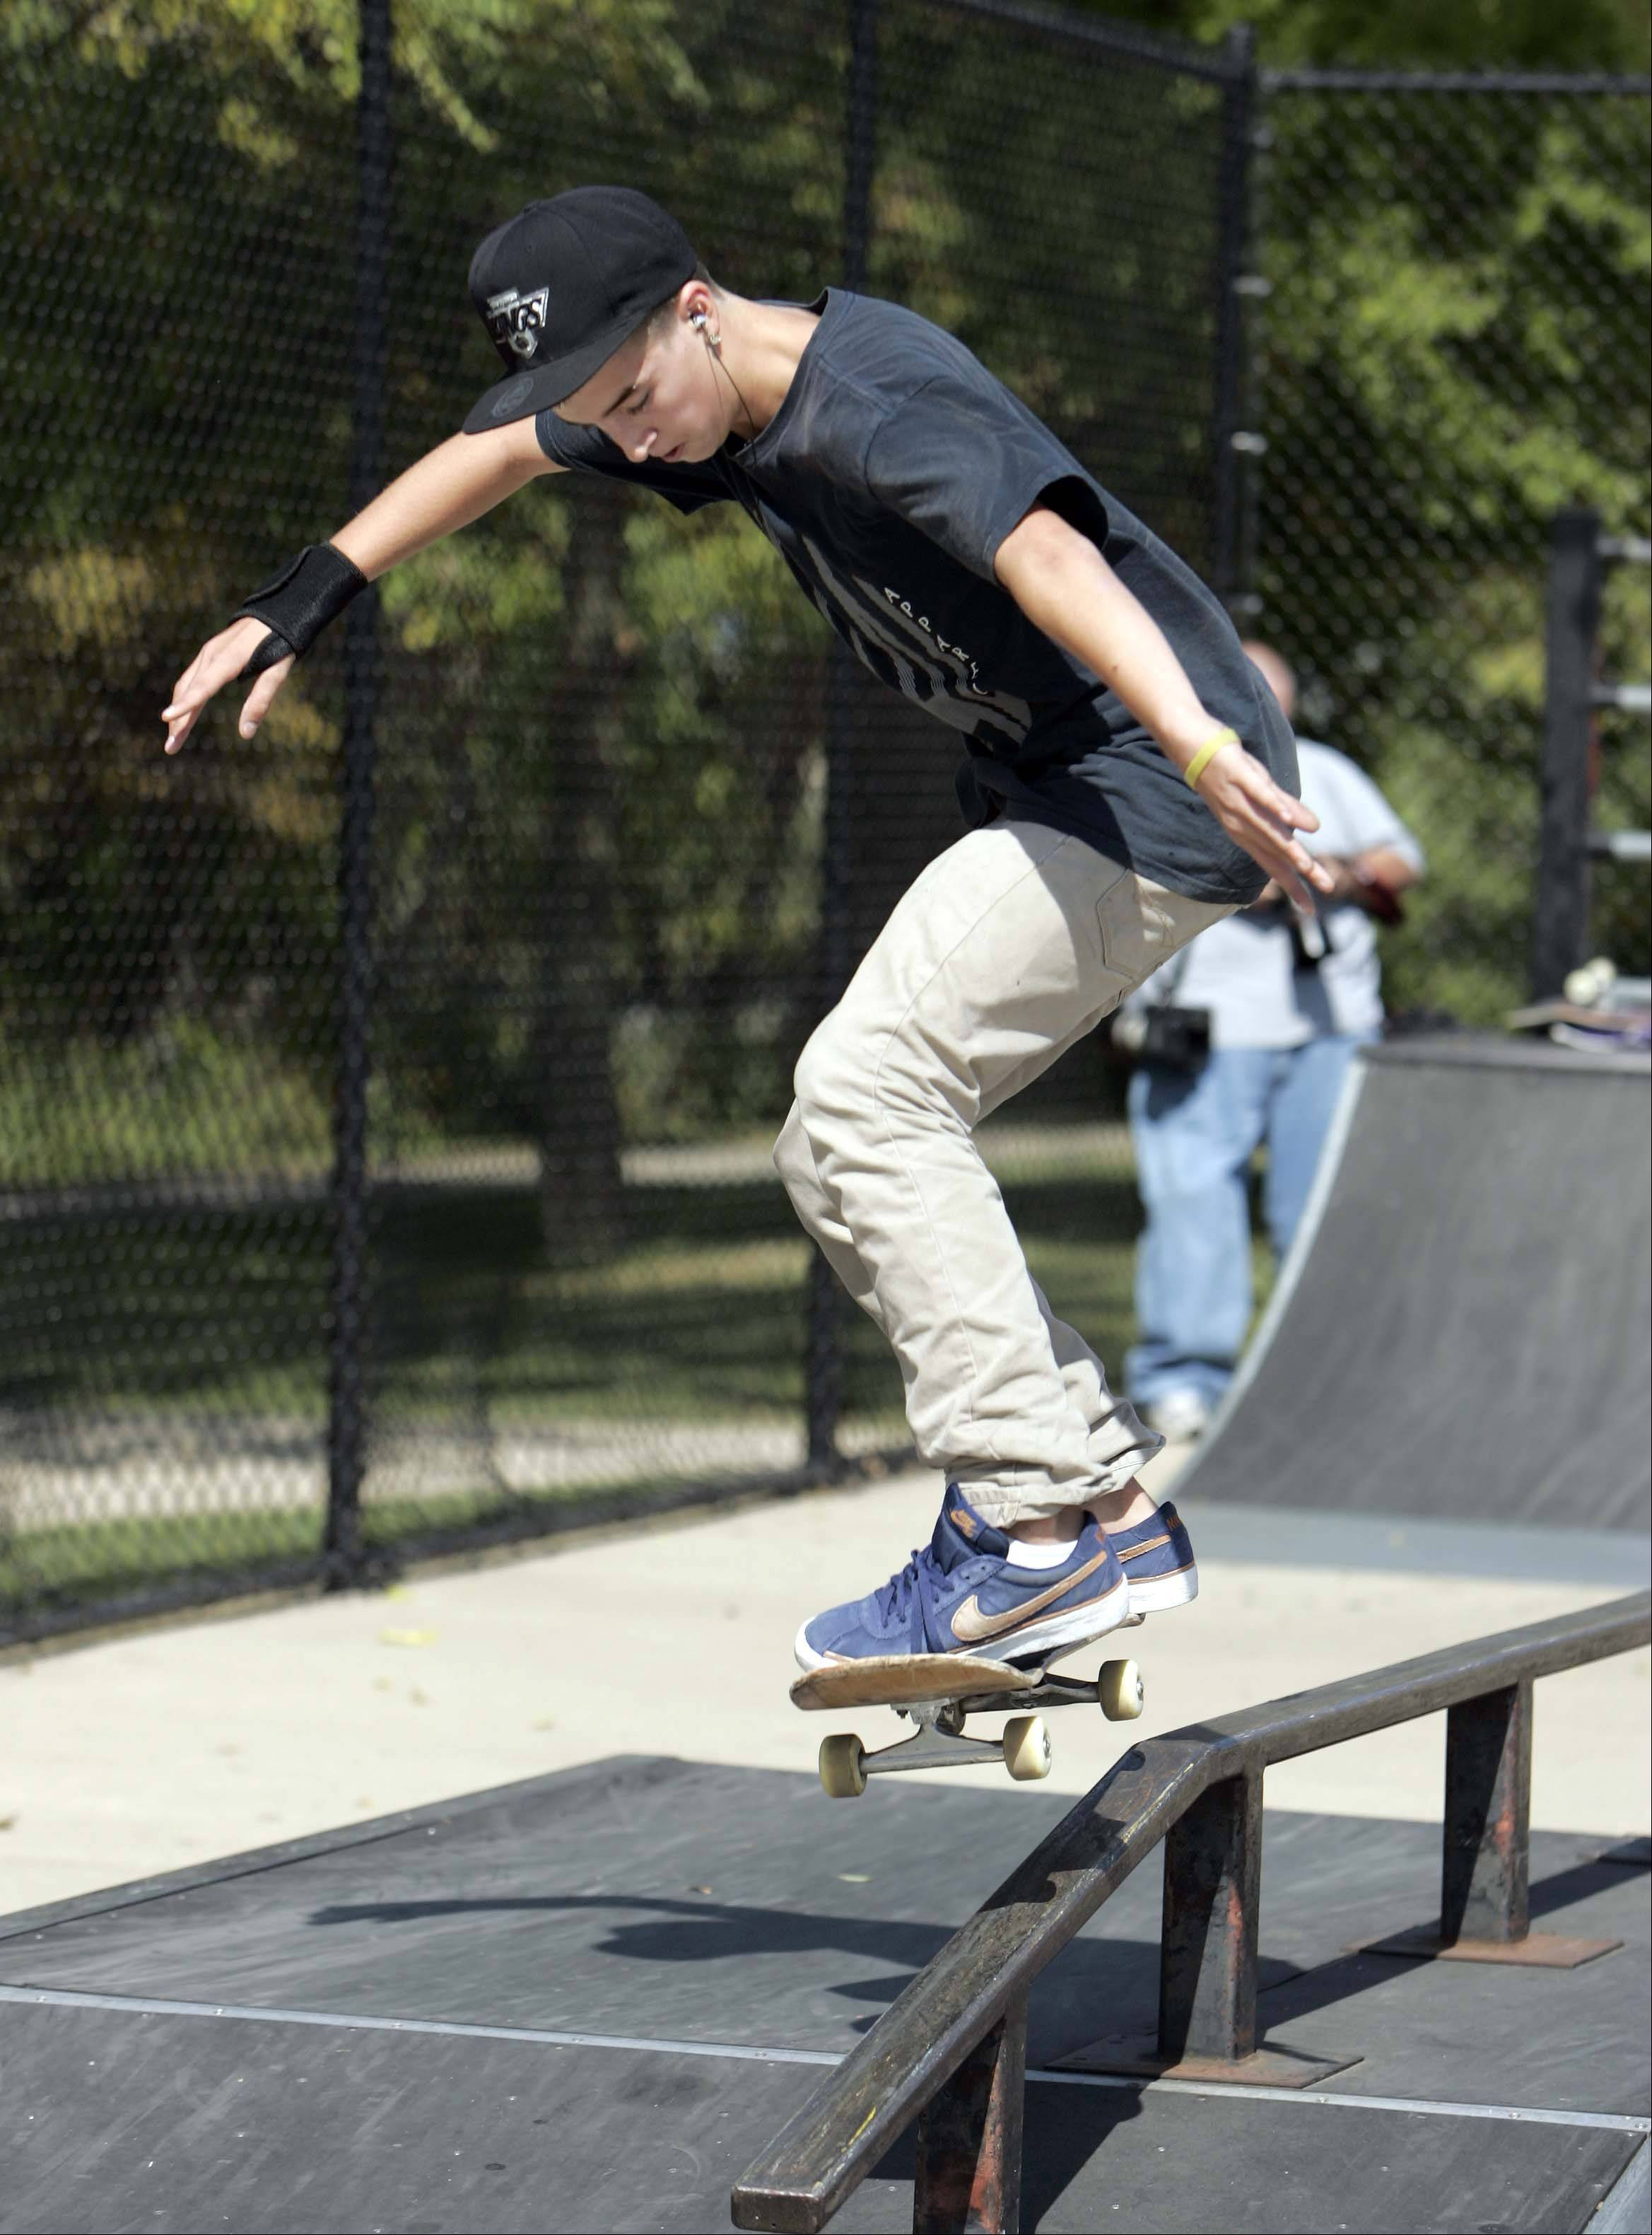 Danny Beauchamp, 15, of North Aurora ollies up to a 5-50 grind during the Batavia Teen Center's third-annual skateboard competition Saturday at Blackard Skate-n-Bike Park in Batavia.